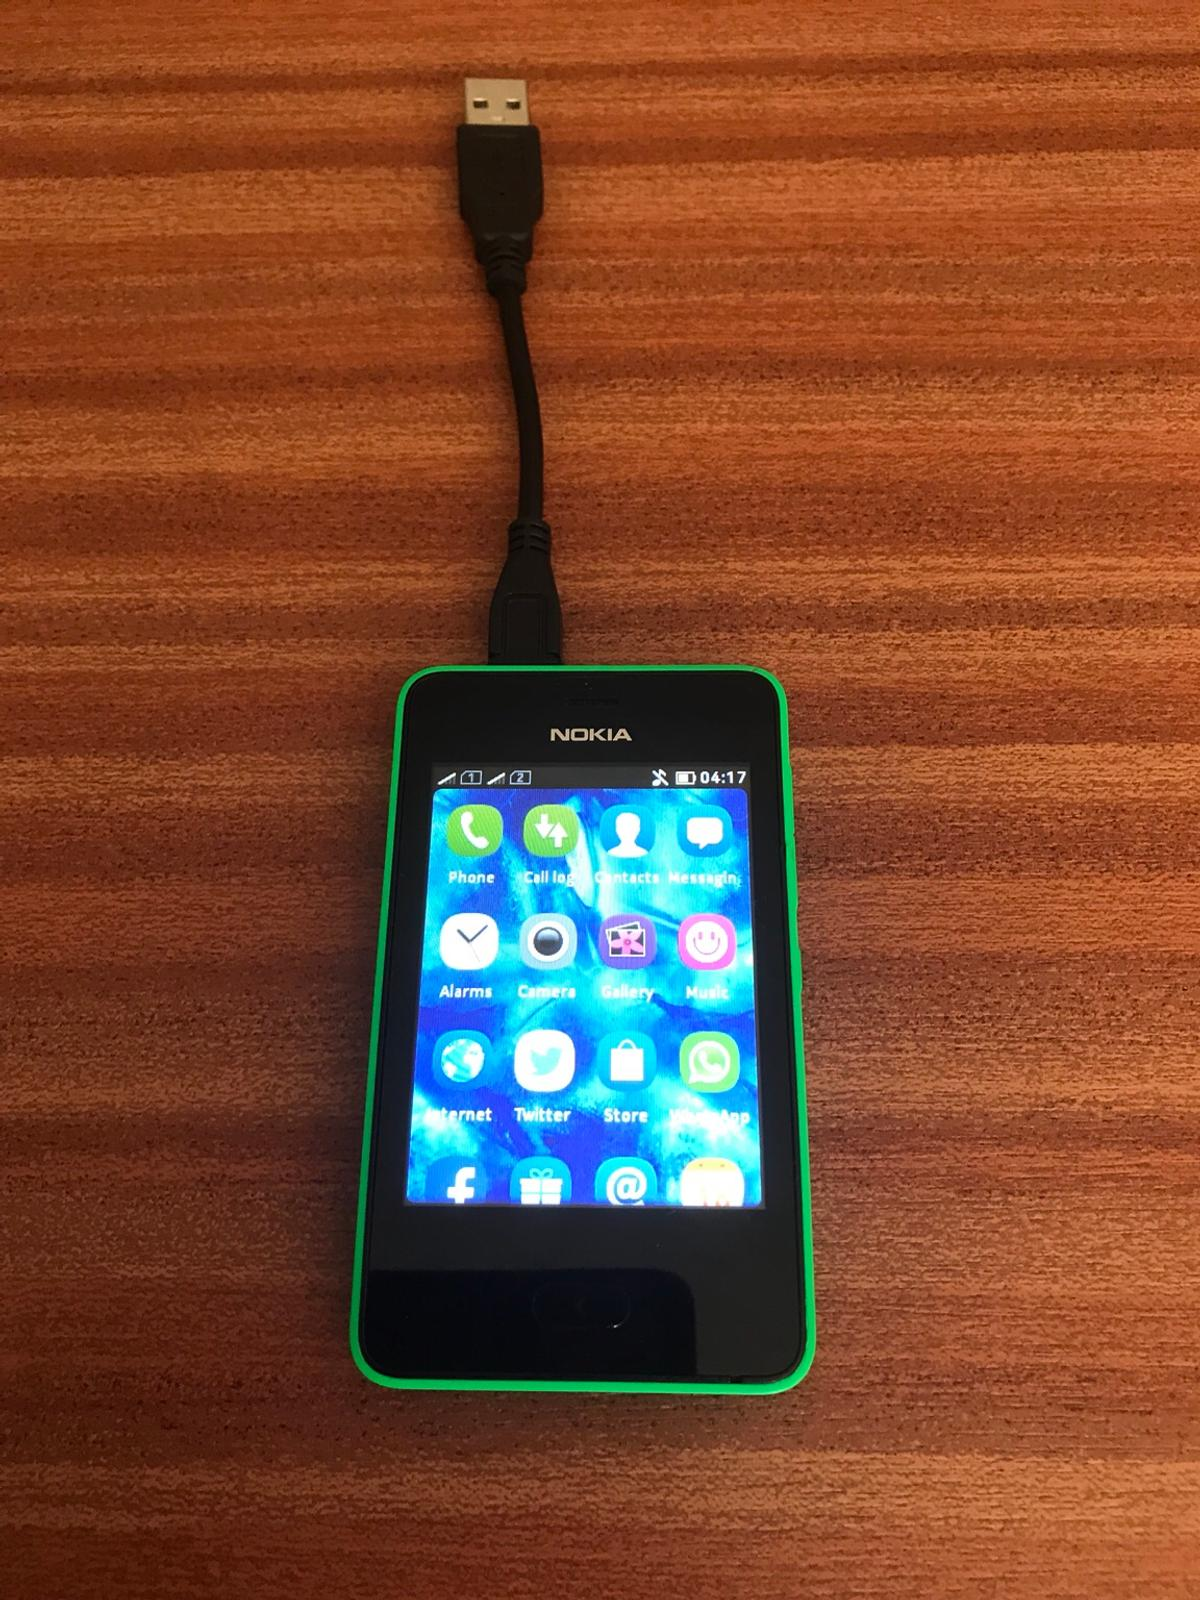 Dual Sim Nokia Symbian Mobile Phone in WS12 Chase for £30 00